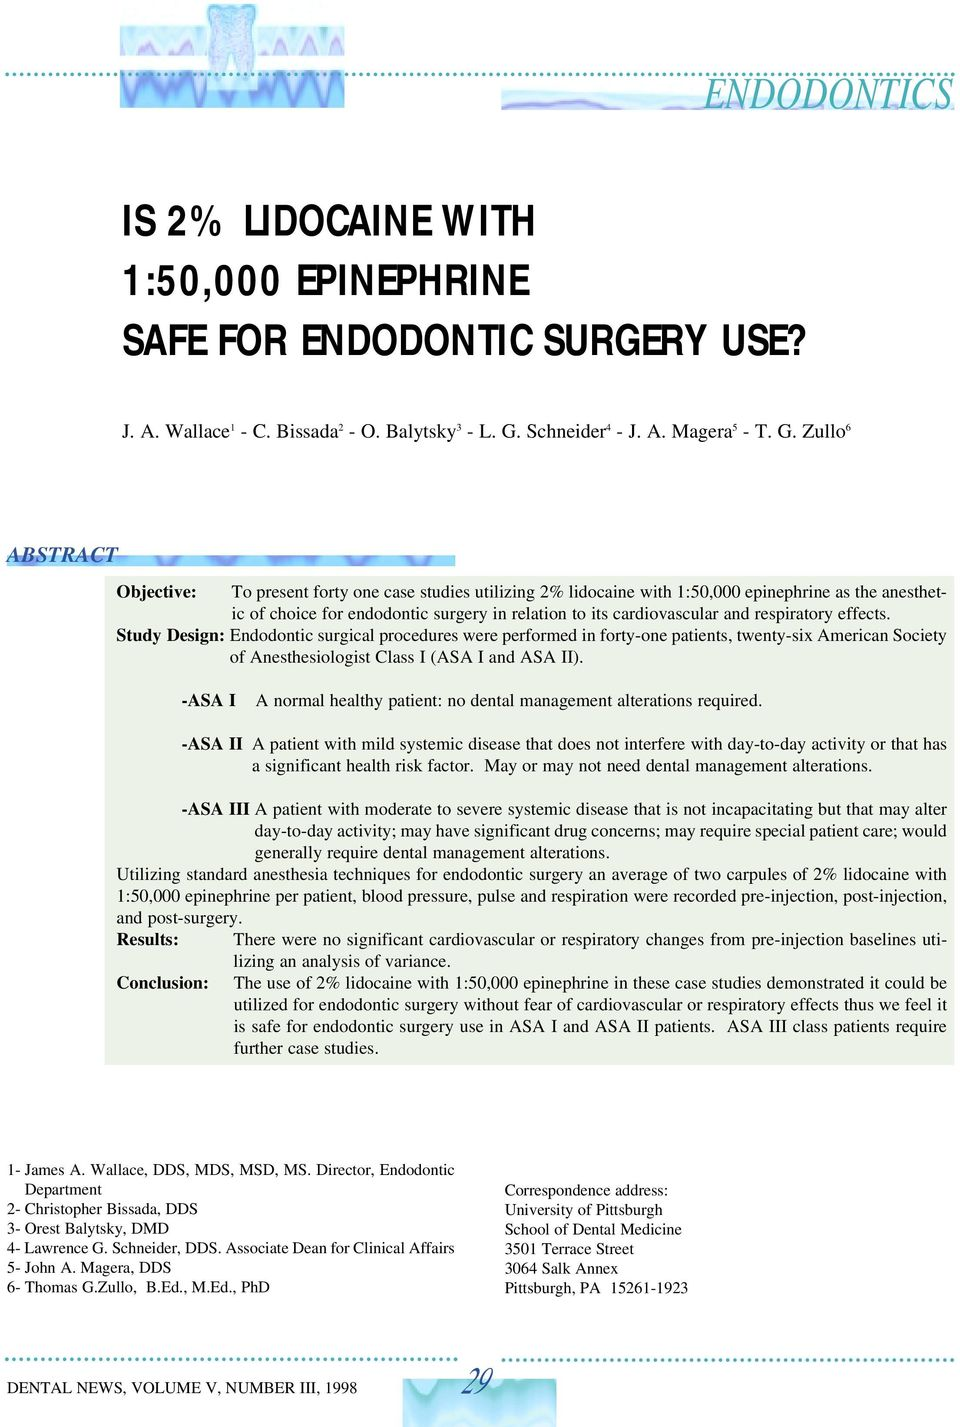 Zullo 6 ABSTRACT Objective: To present forty one case studies utilizing 2% lidocaine with 1:50,000 epinephrine as the anesthetic of choice for endodontic surgery in relation to its cardiovascular and